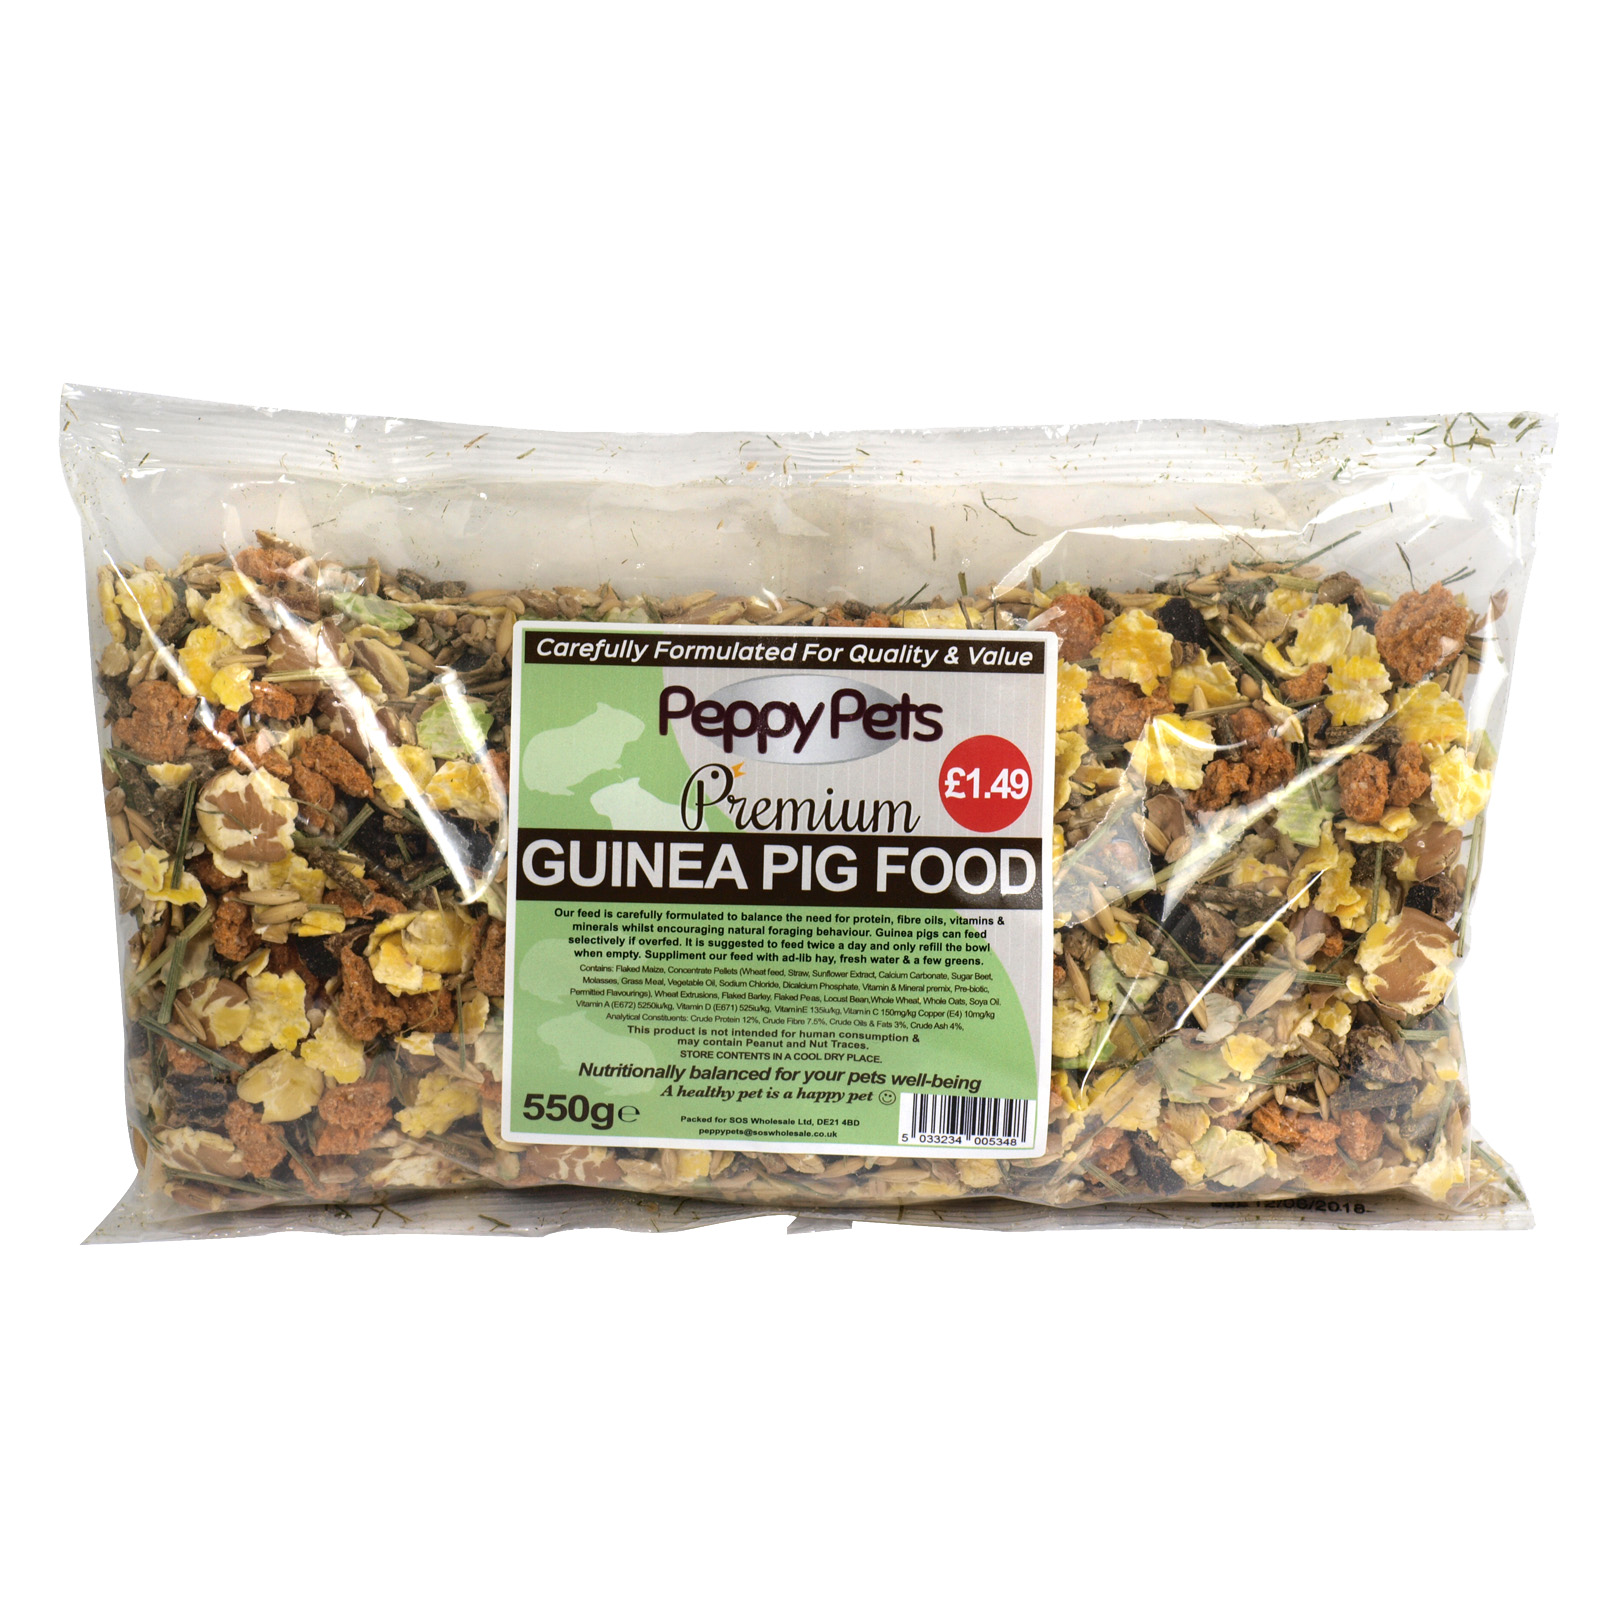 PEPPY PETS GUINEA PIG FOOD PM£1.49 550GM